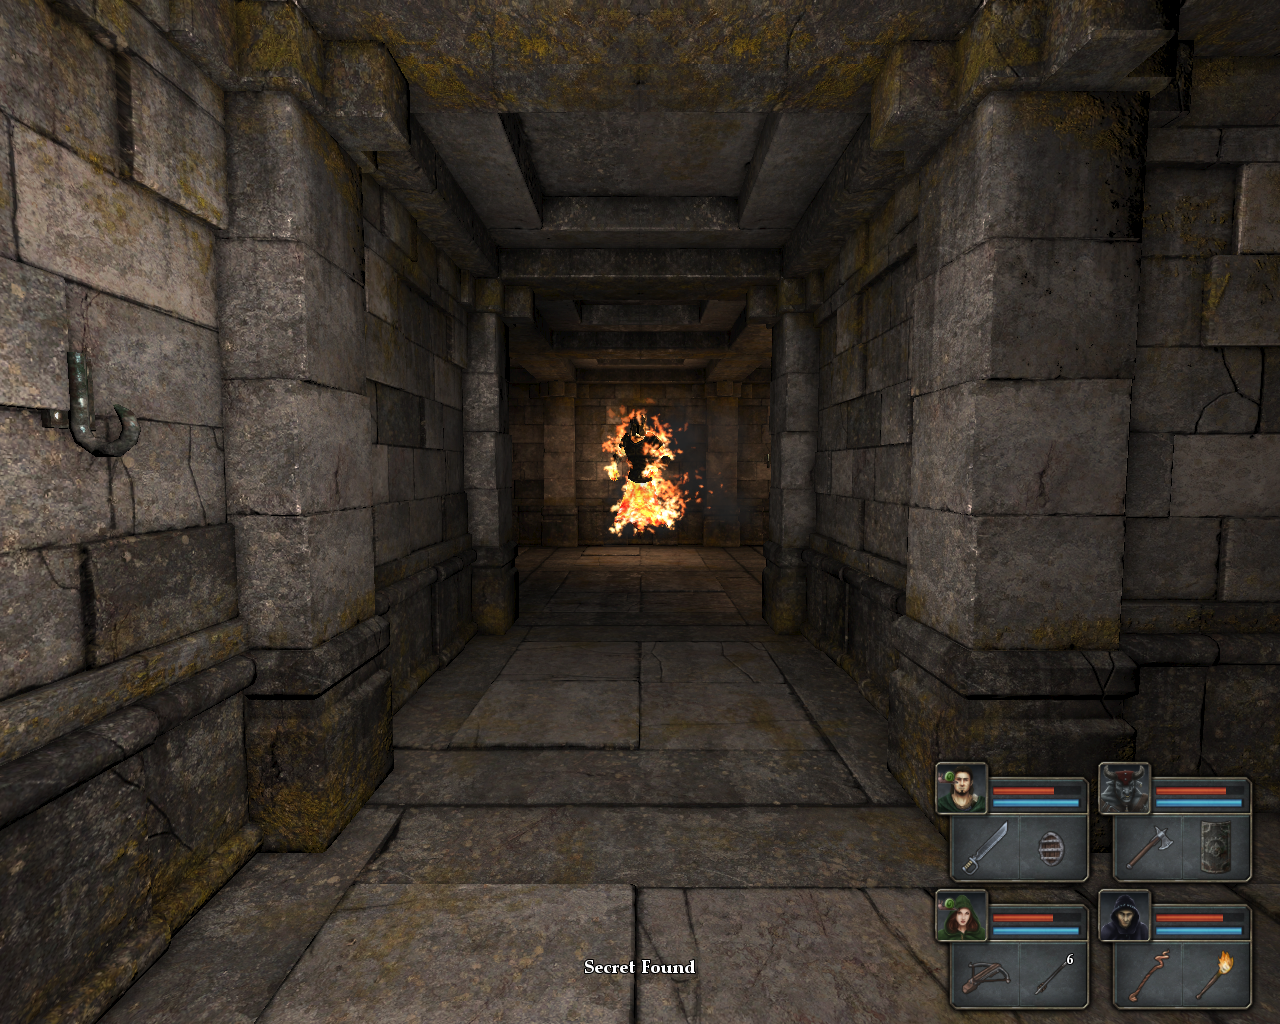 Legend of Grimrock Windows Uggardian